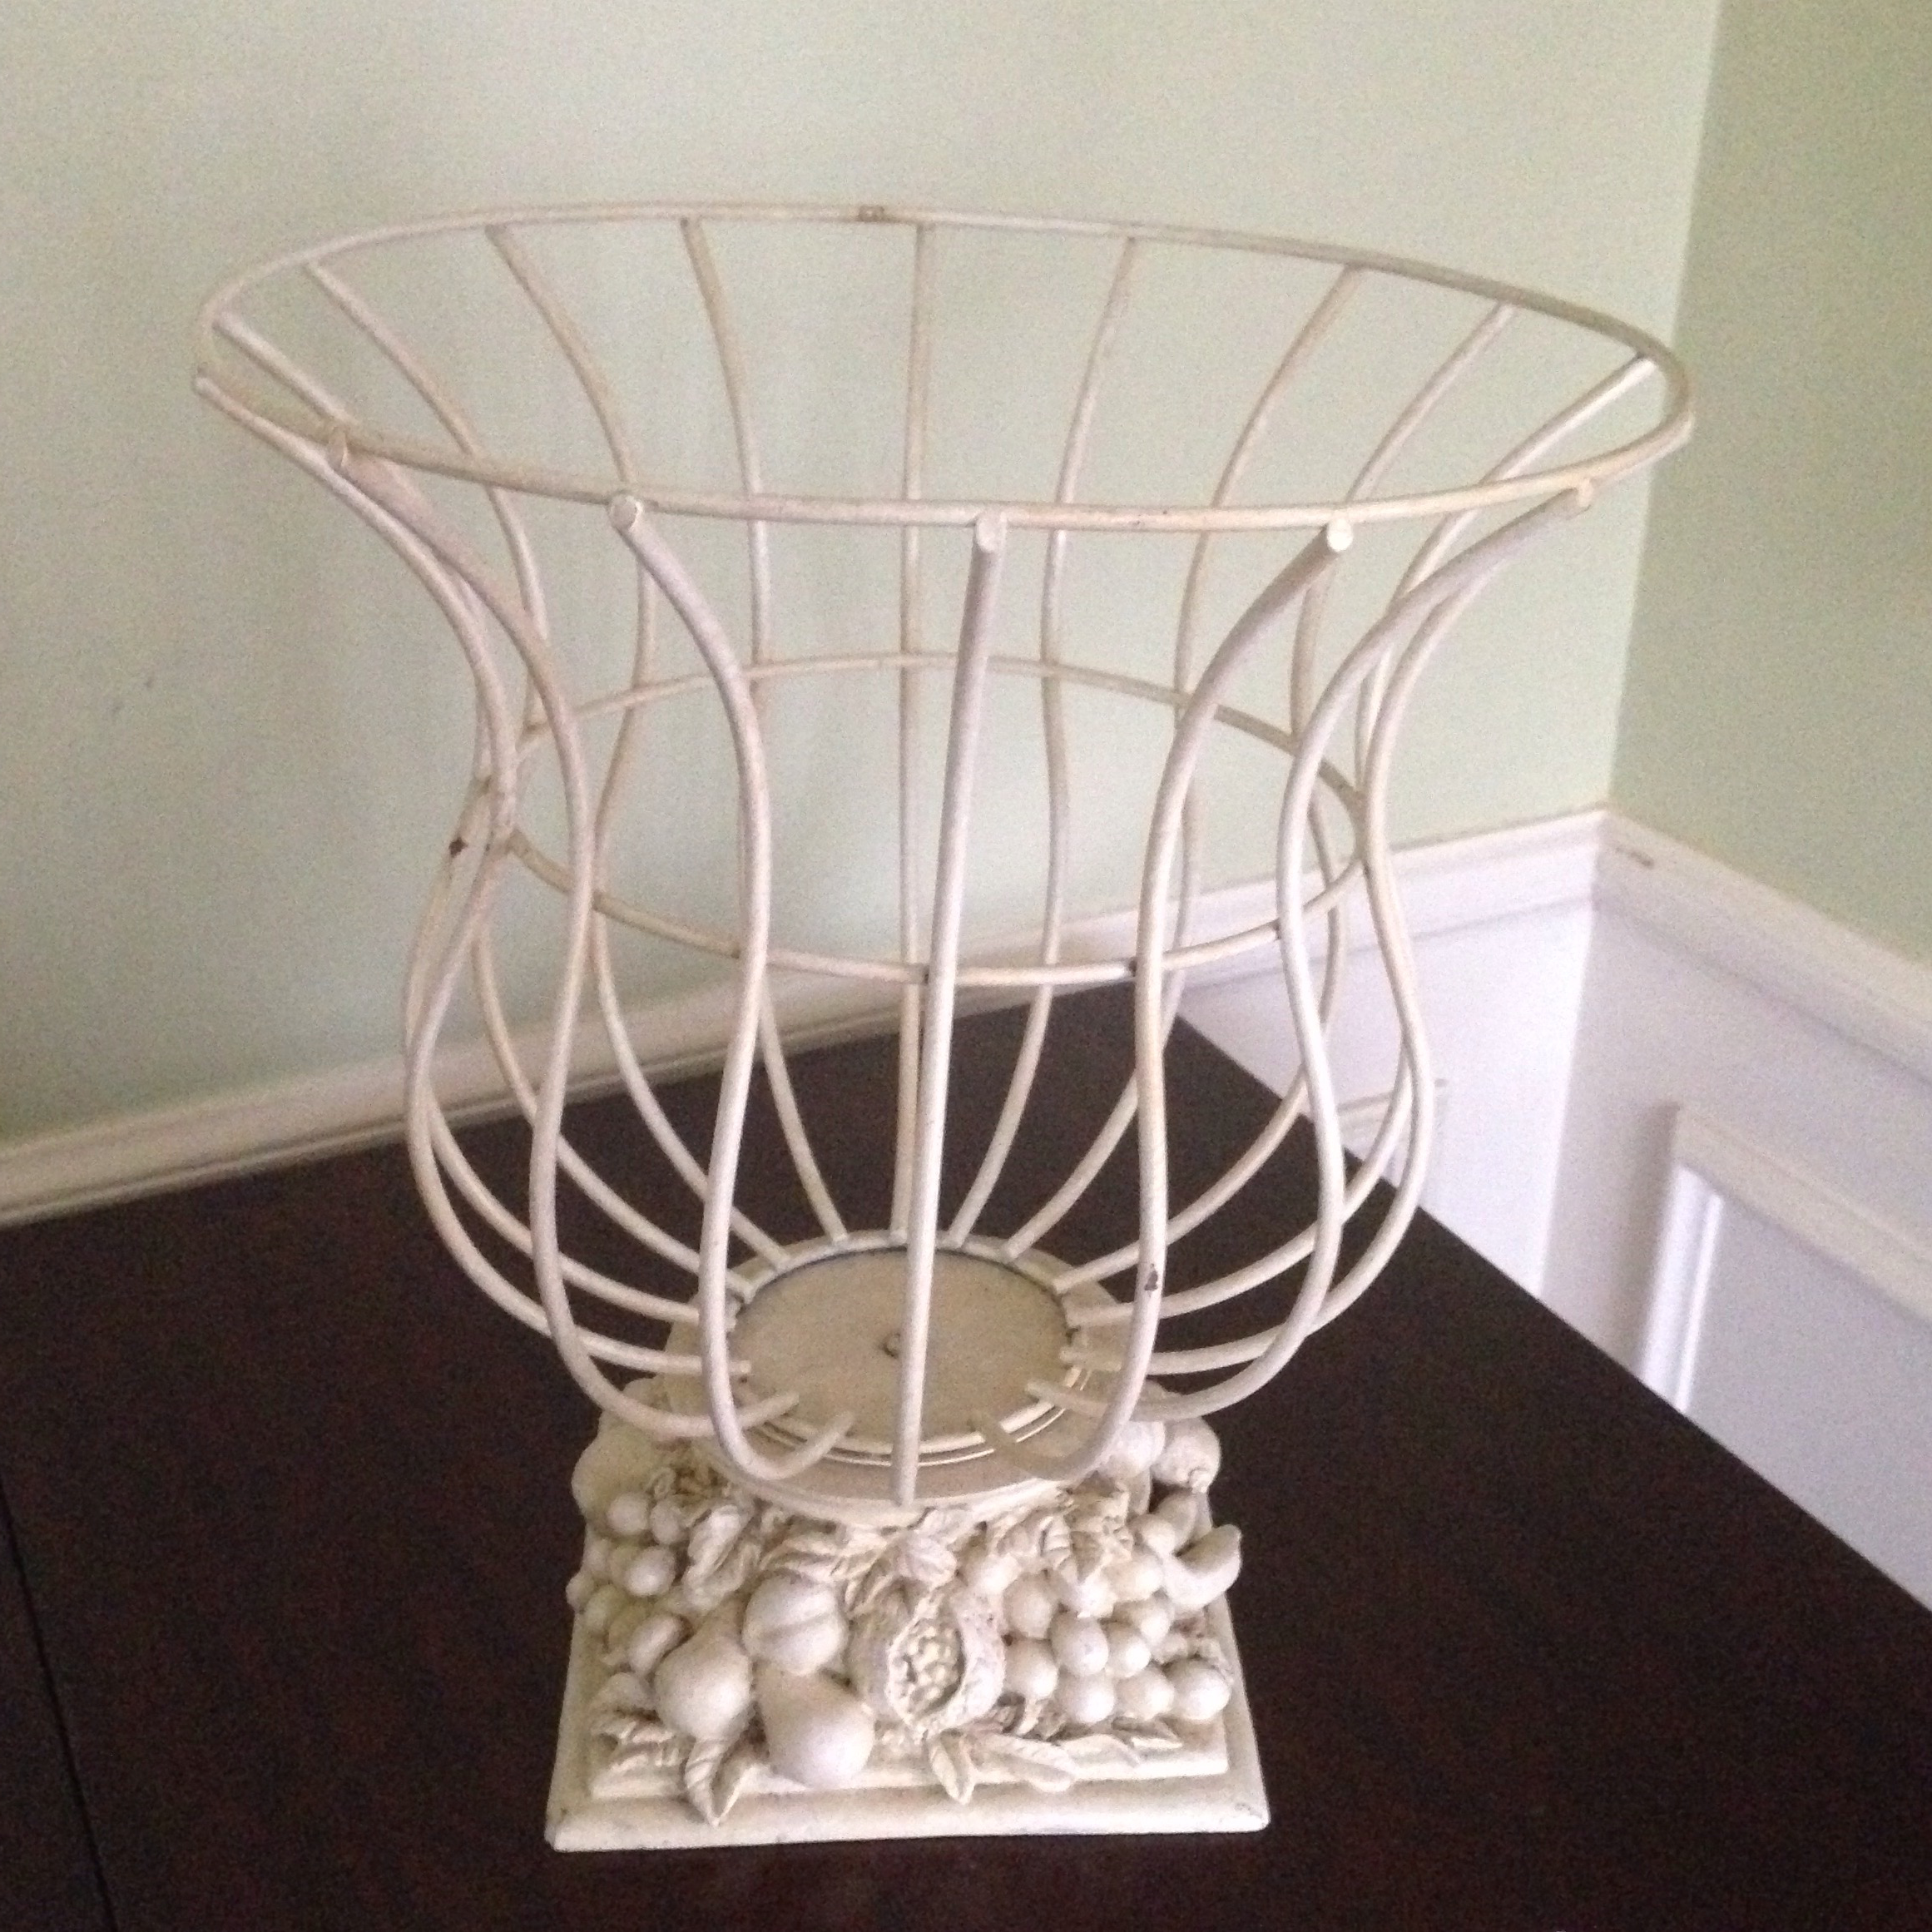 Charmant A Vintage, French Style Garden Urn In A Soft Ivory Tone. This Piece Features